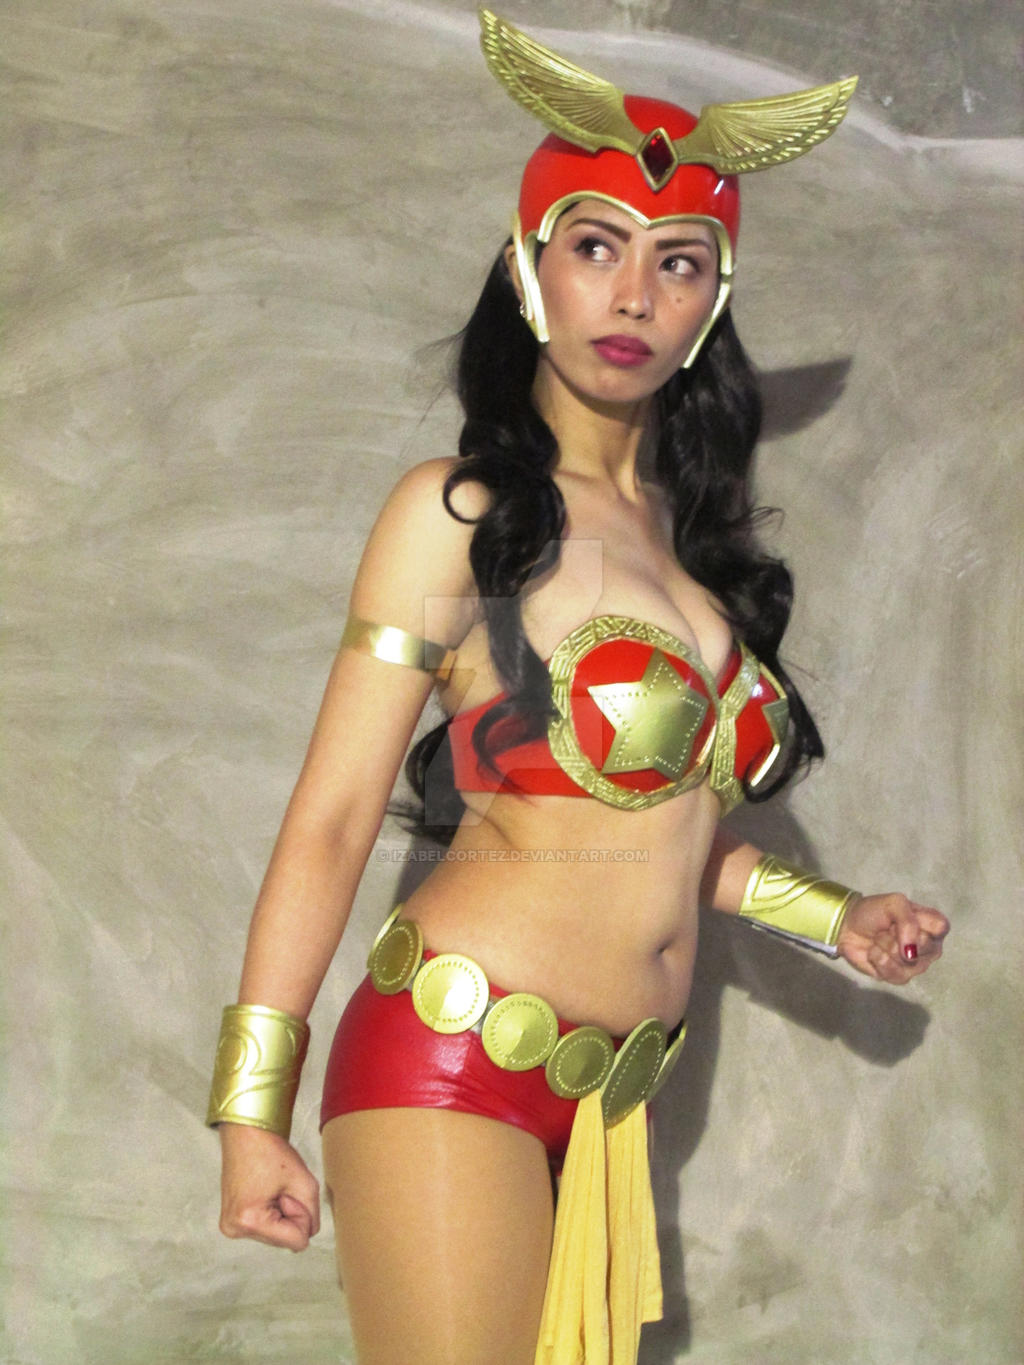 Darna by izabelcortez on DeviantArt - 308.5KB